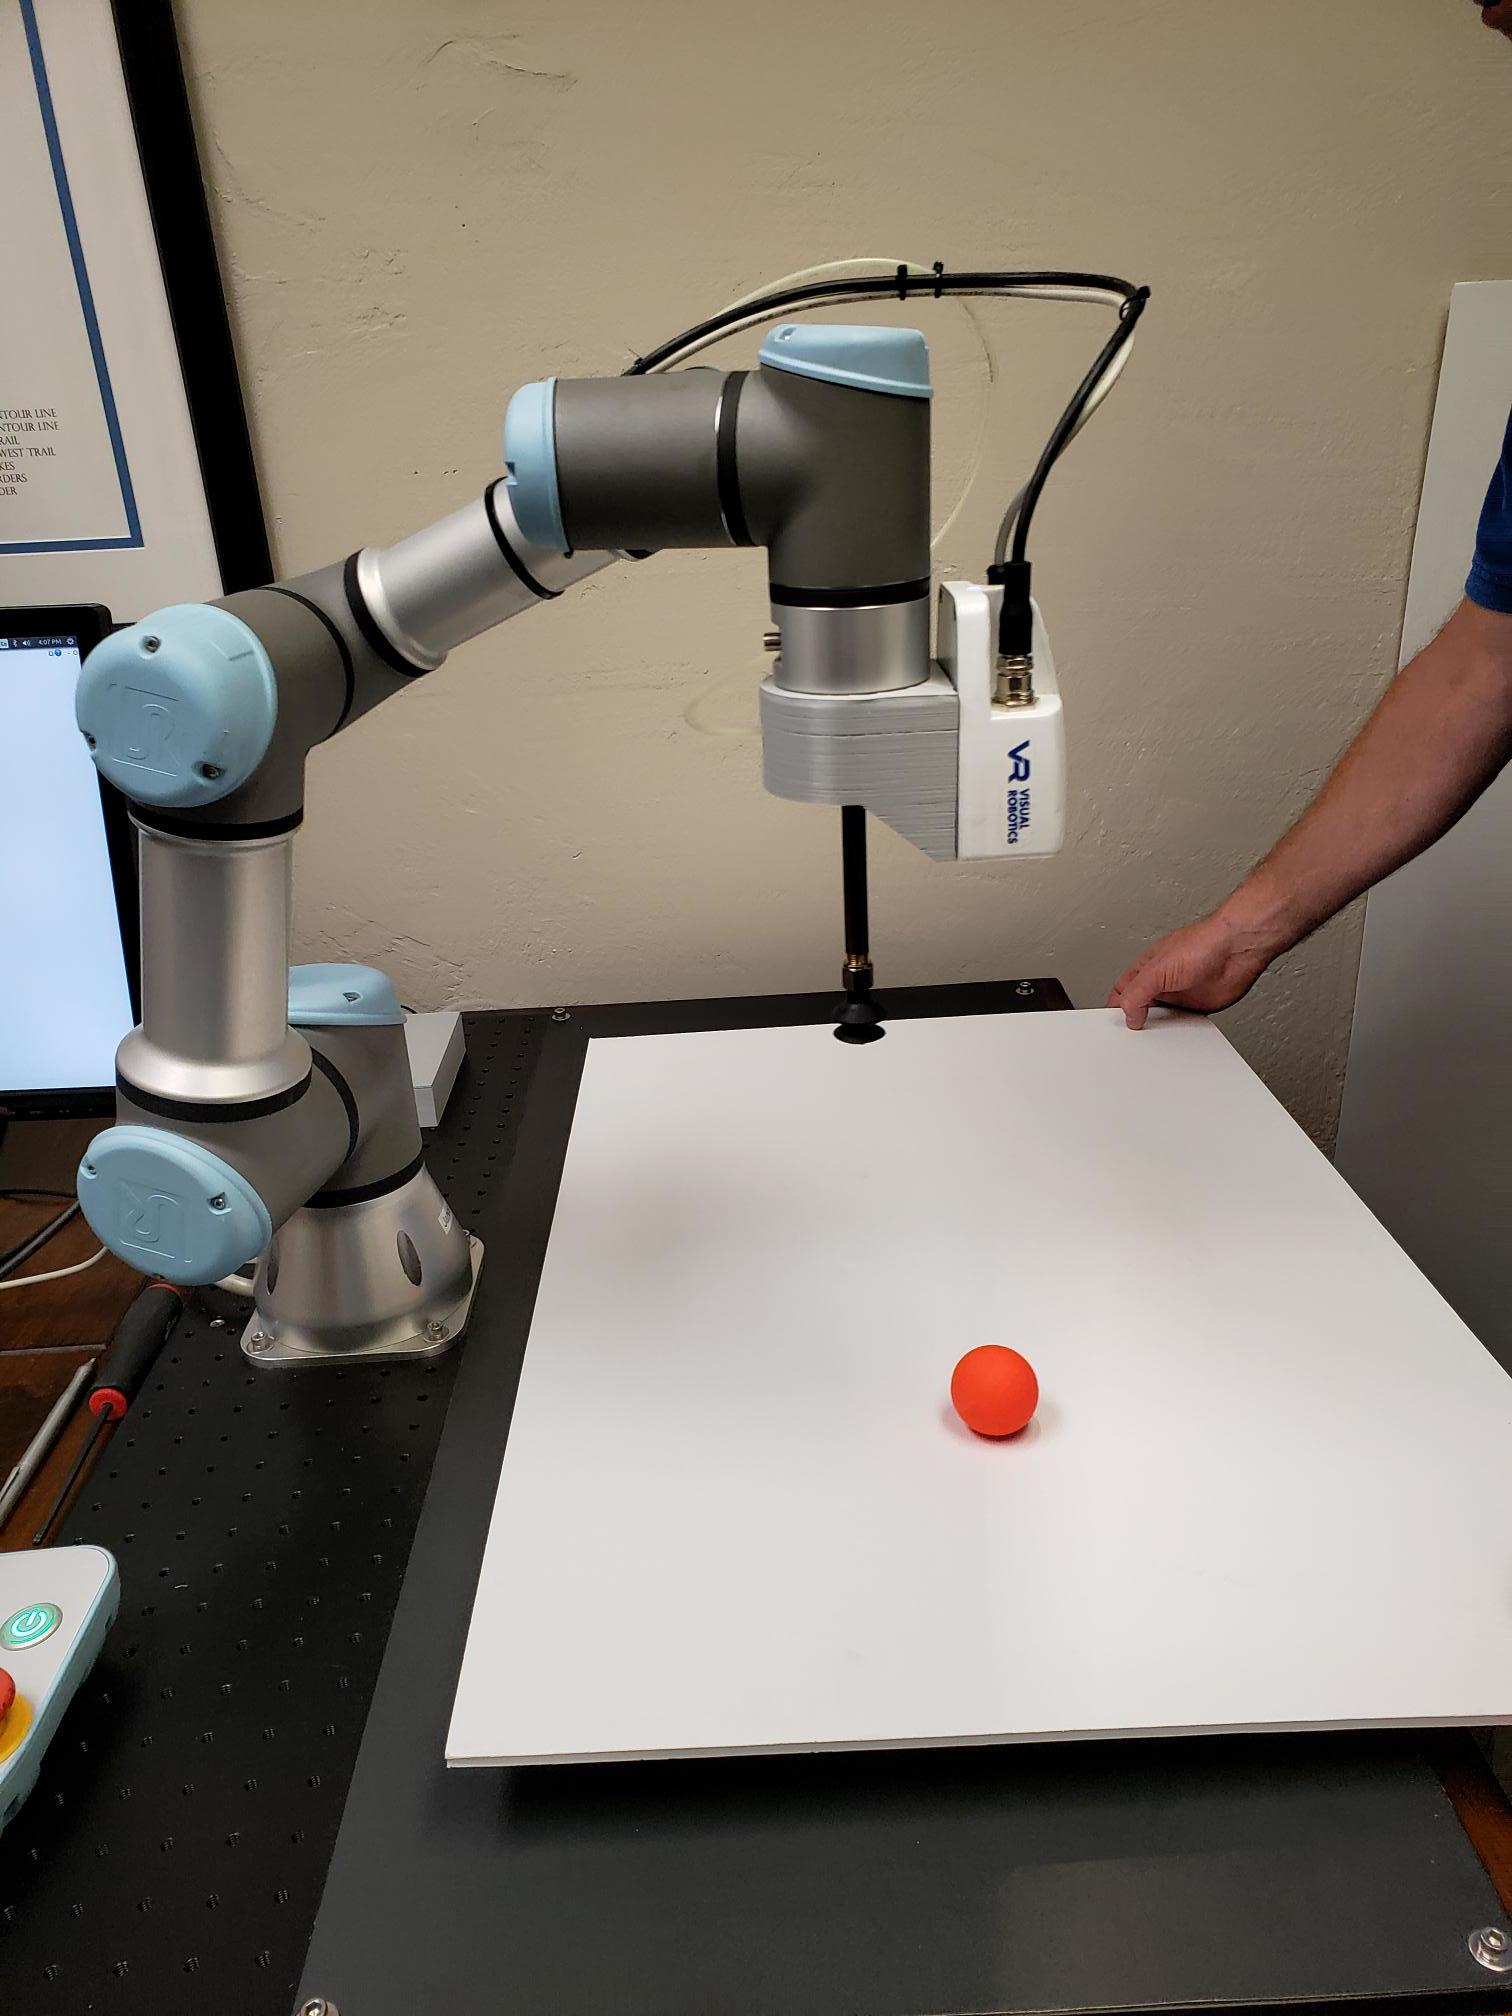 In this demonstration, a UR3 robot with our VIM-201 system installed moves in synch with a rolling golf ball. The vision system tracks the ball and sends updated way points to the robot continuously in order to maintain its relative position.